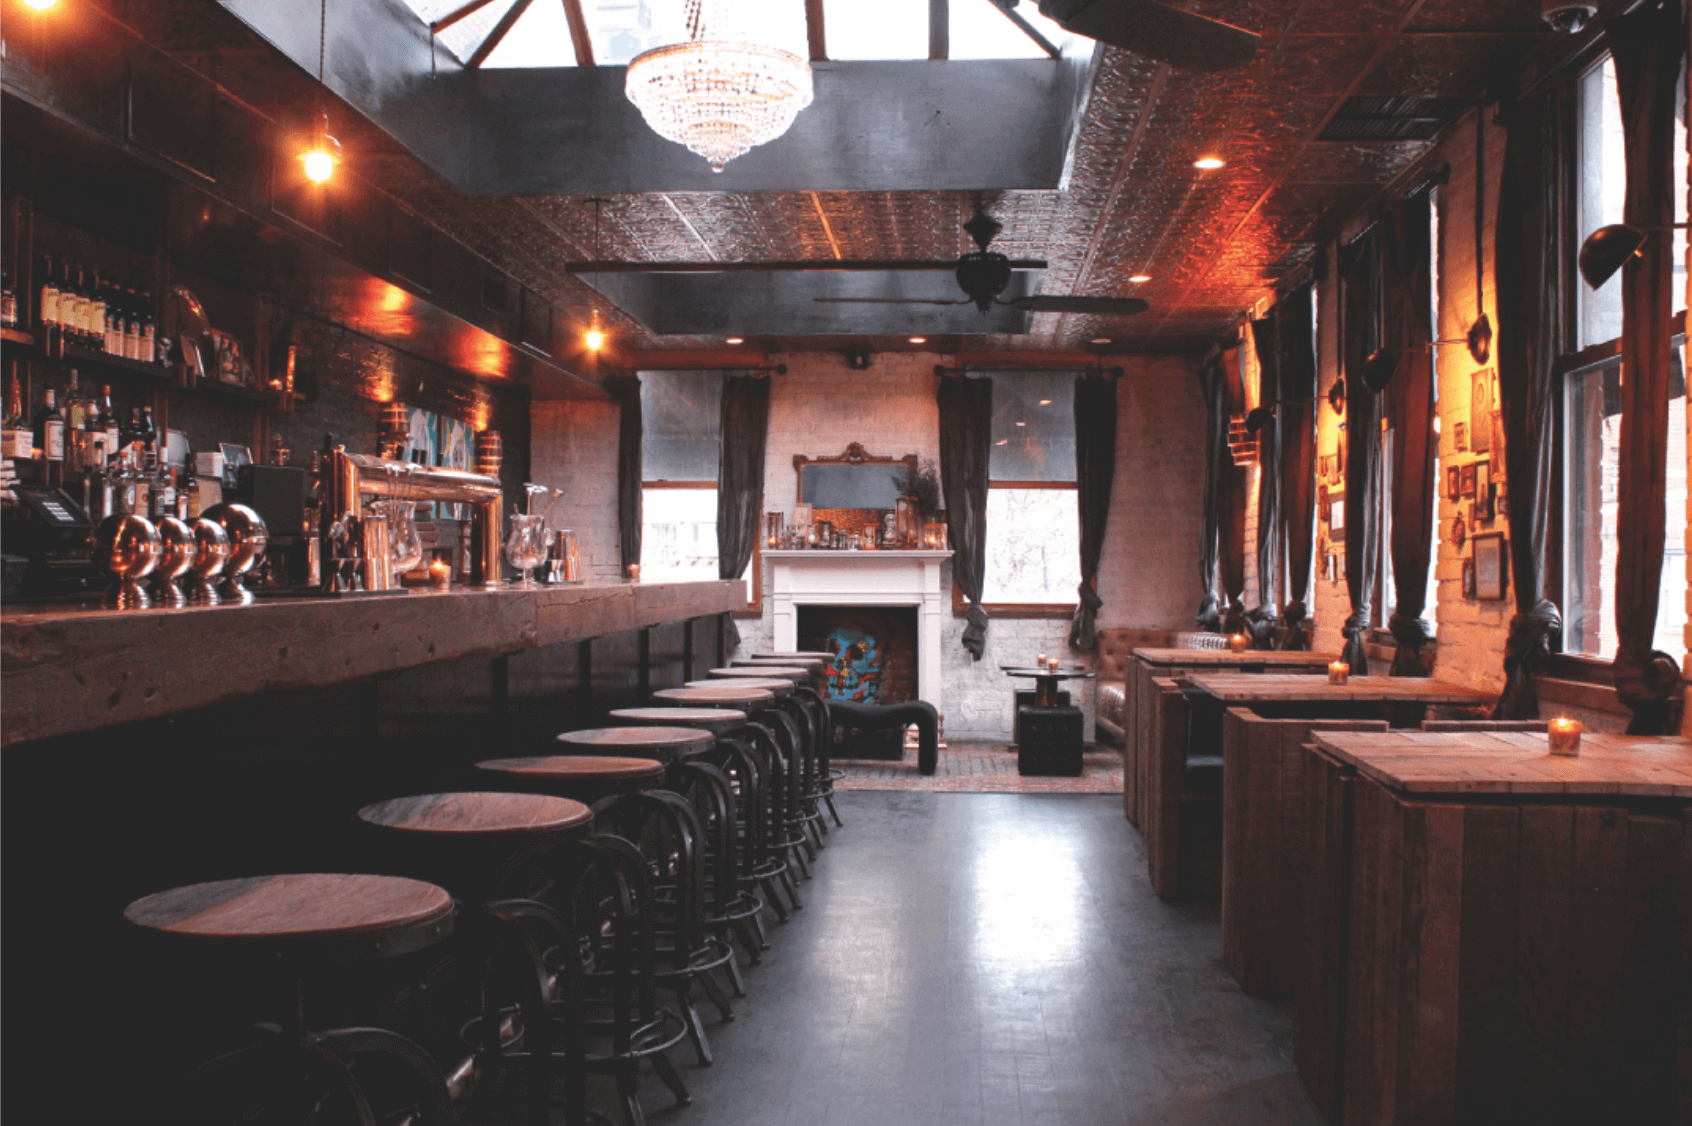 Curiosities Our Bucket Lists 3 NYC Hidden Gems The Garret West Bar